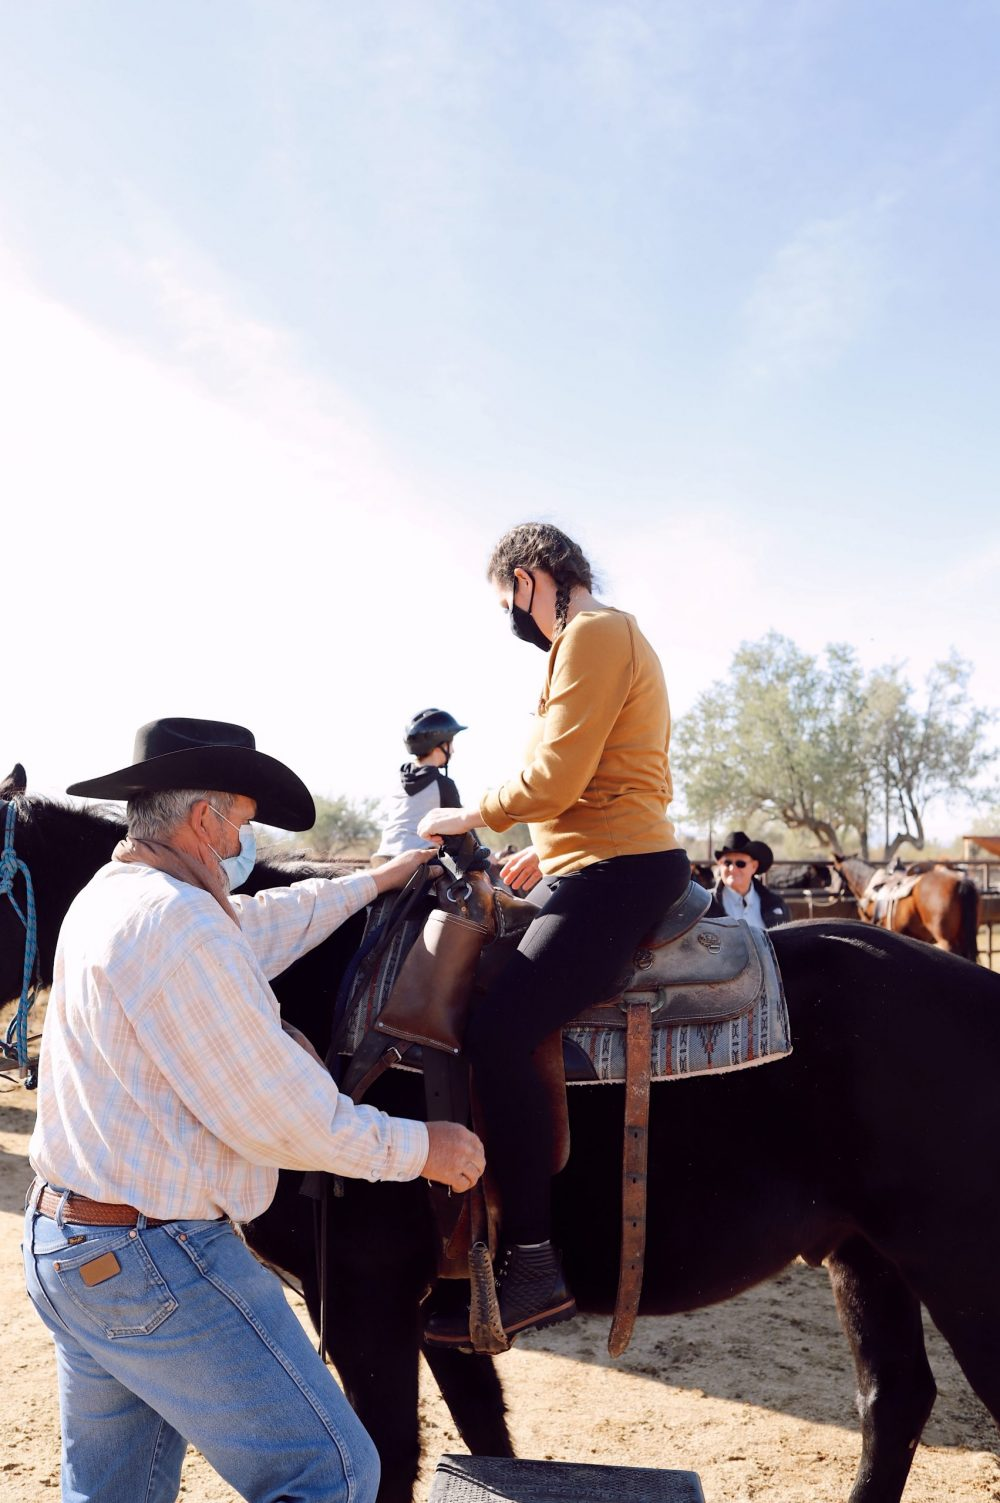 One of the Best Secret Winter Sun Destinations, Scottsdale Arizona. Horseback riding in the desert and family-friendly activities at MacDonald's Ranch. |Guide by popular Florida travel blog, Fresh Mommy Blog: image of a woman riding a horse.